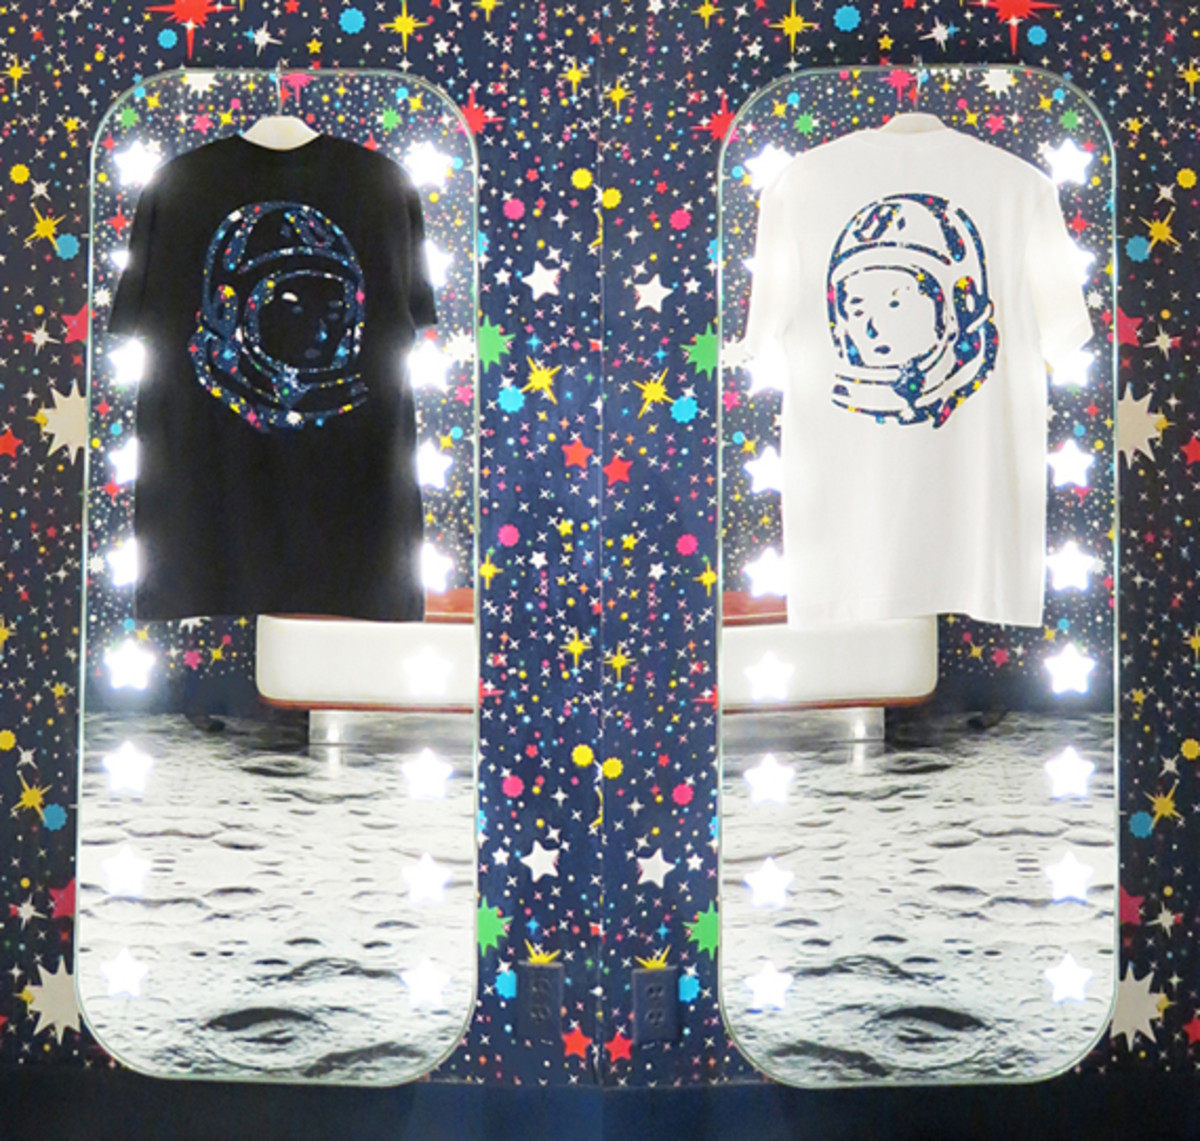 billionaire-boys-club-fashions-night-out-t-shirts-02